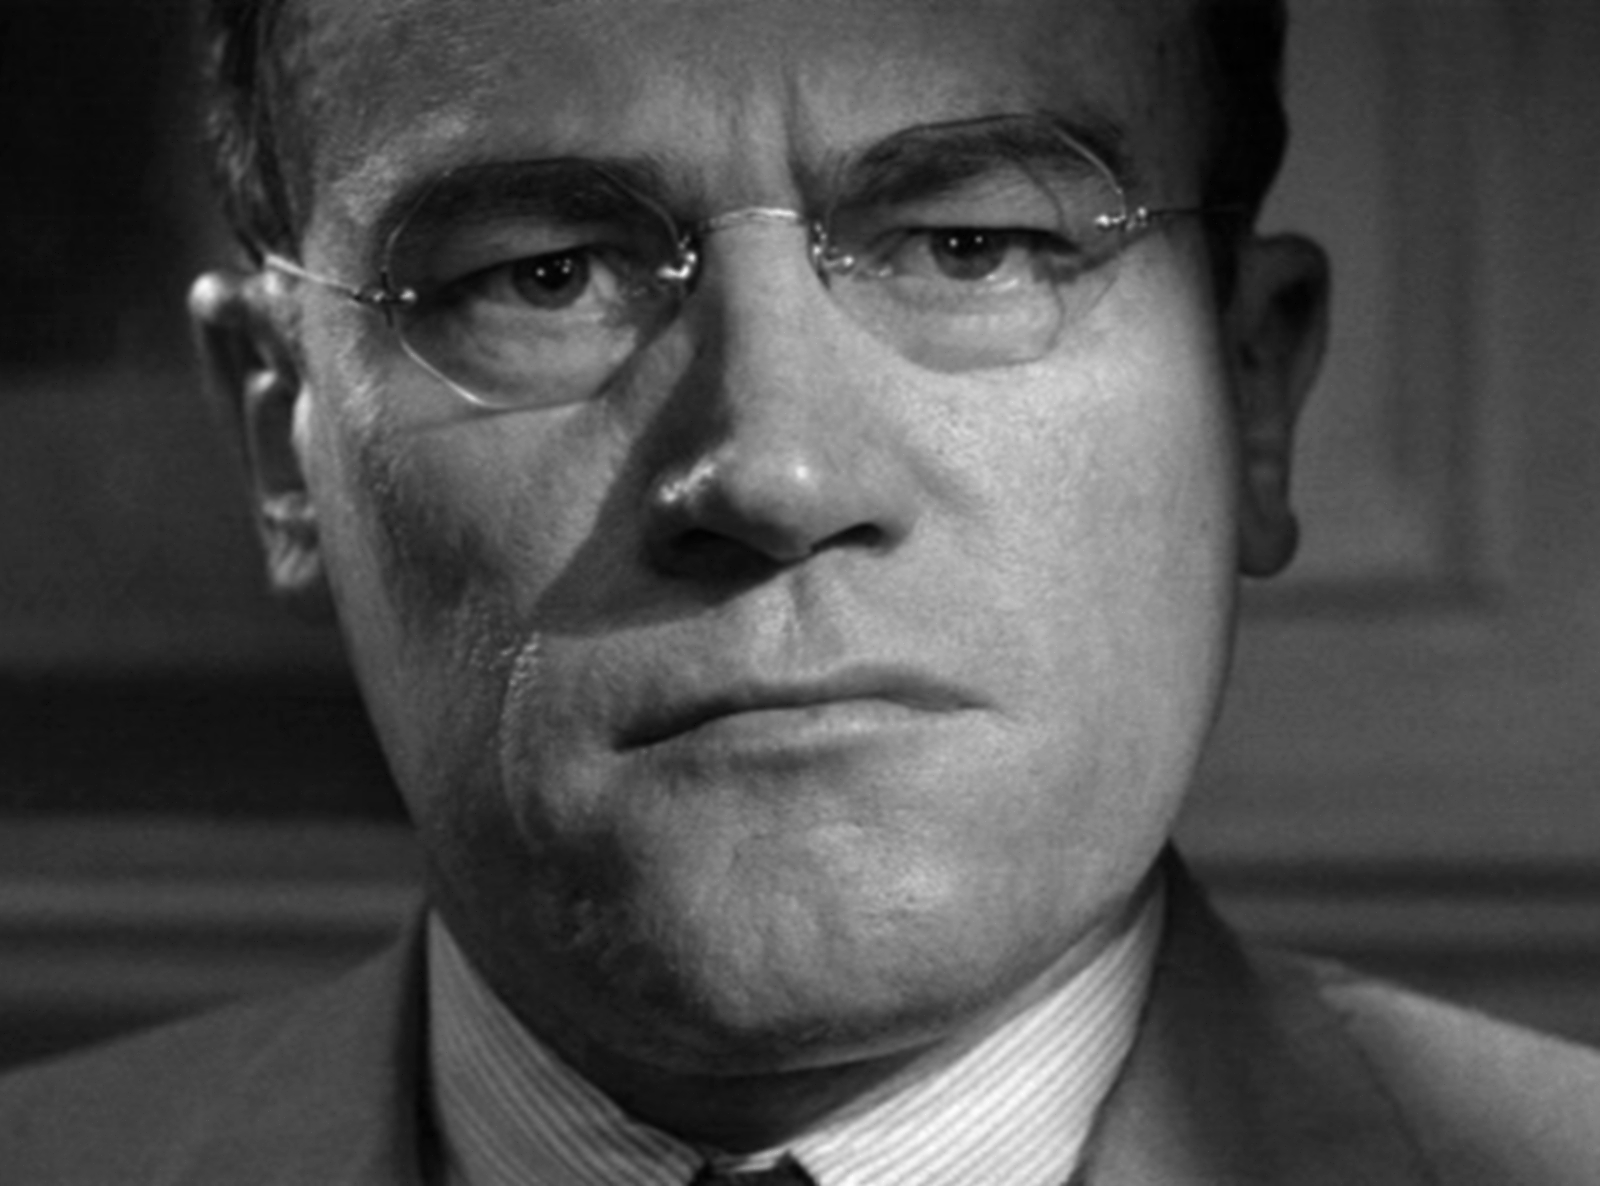 12 angry man Free essay: 12 angry men when placed in a group with different personalities, you have to find a way to work and communicate effectively as a team of course.